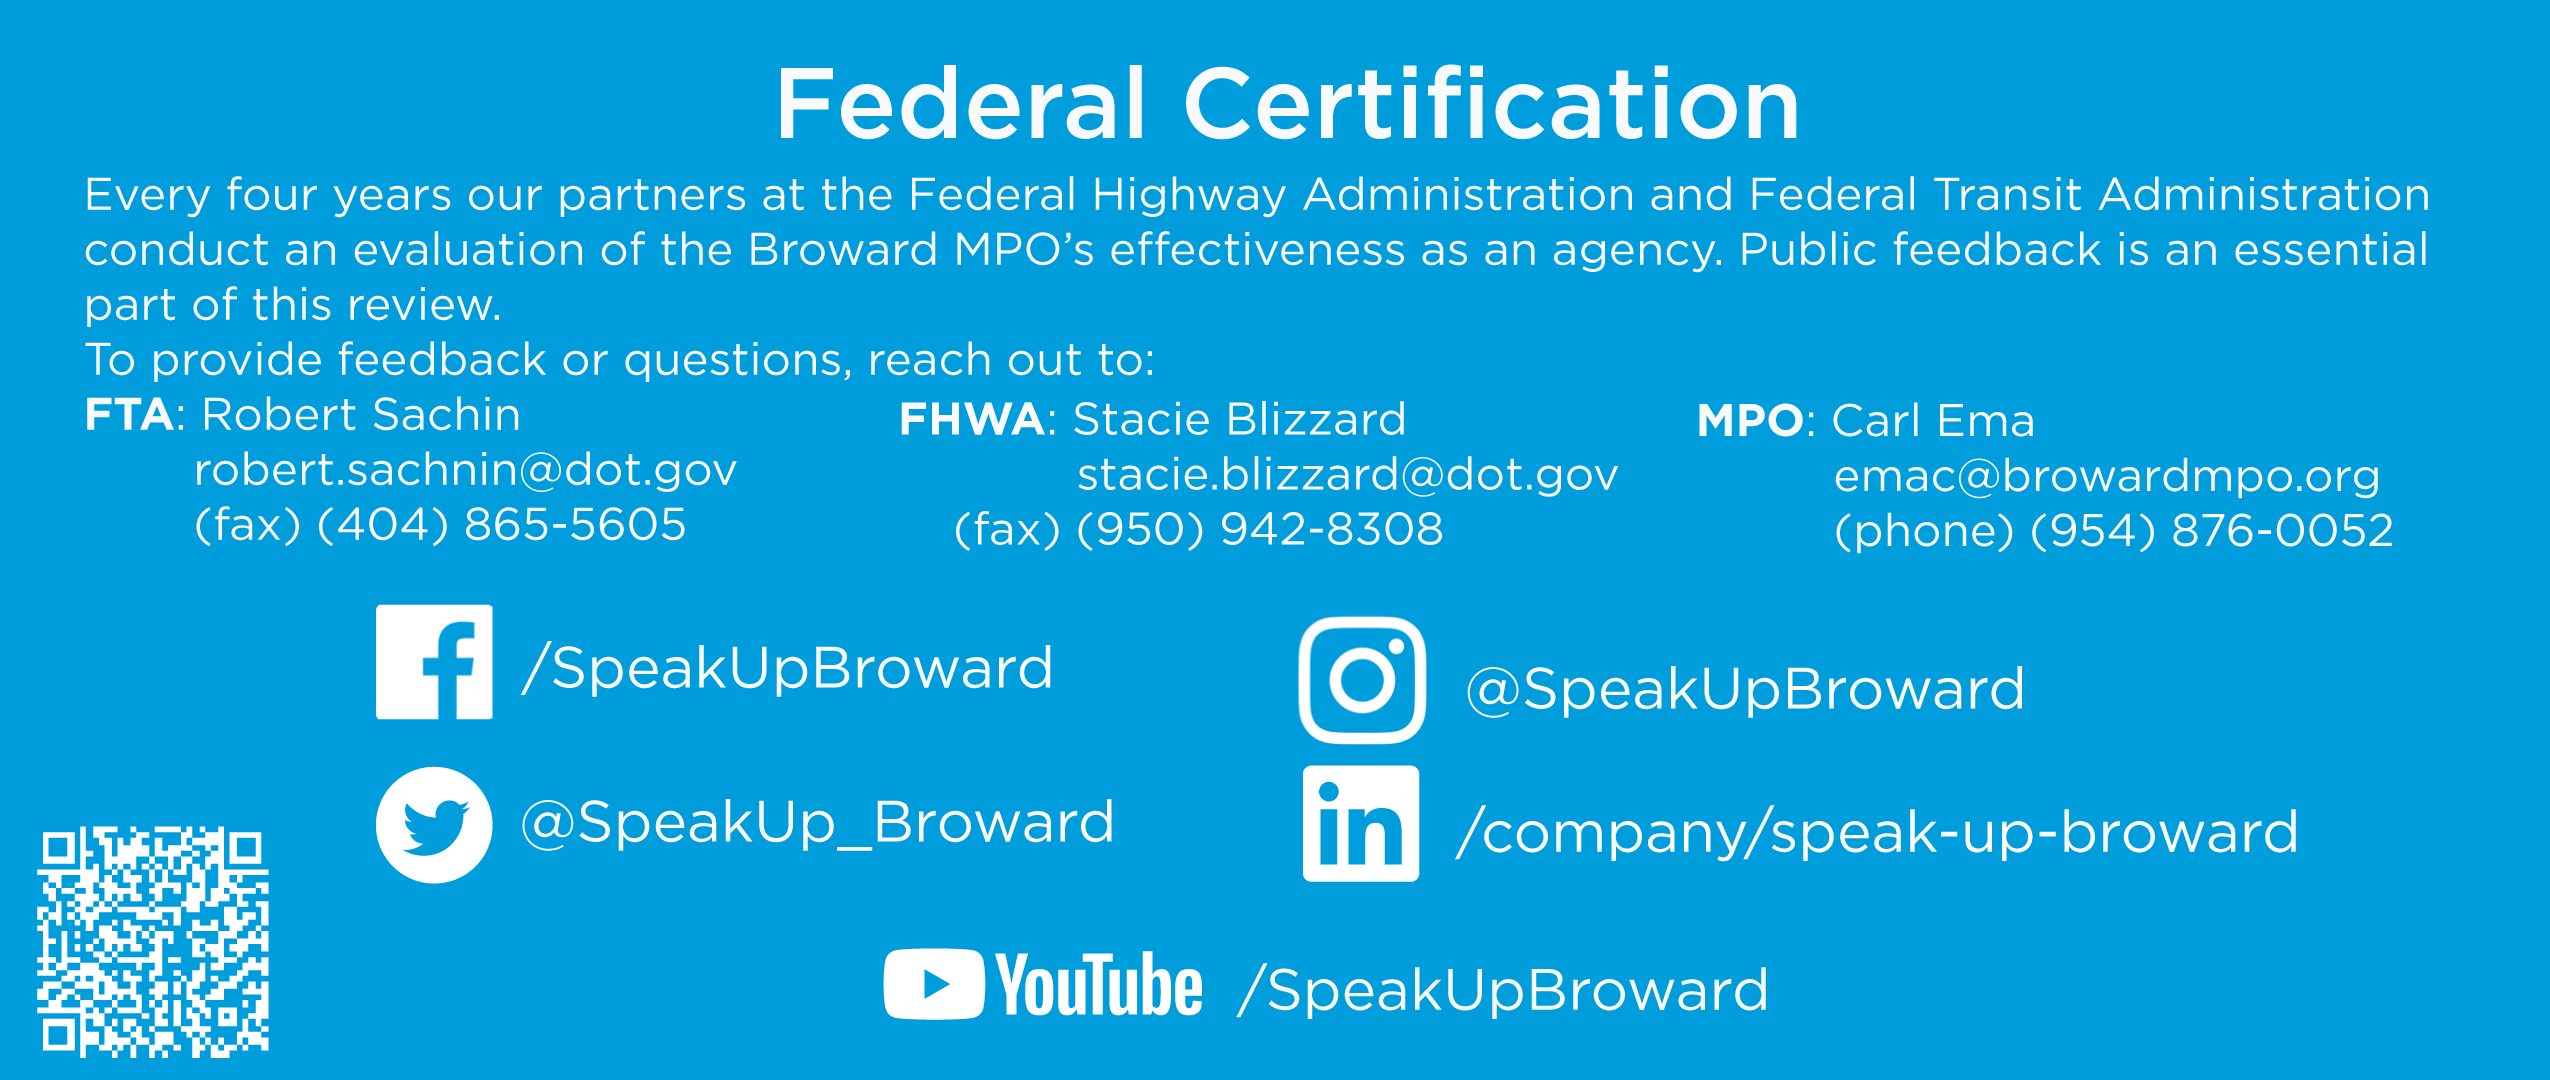 Fed Cert flyer contact us